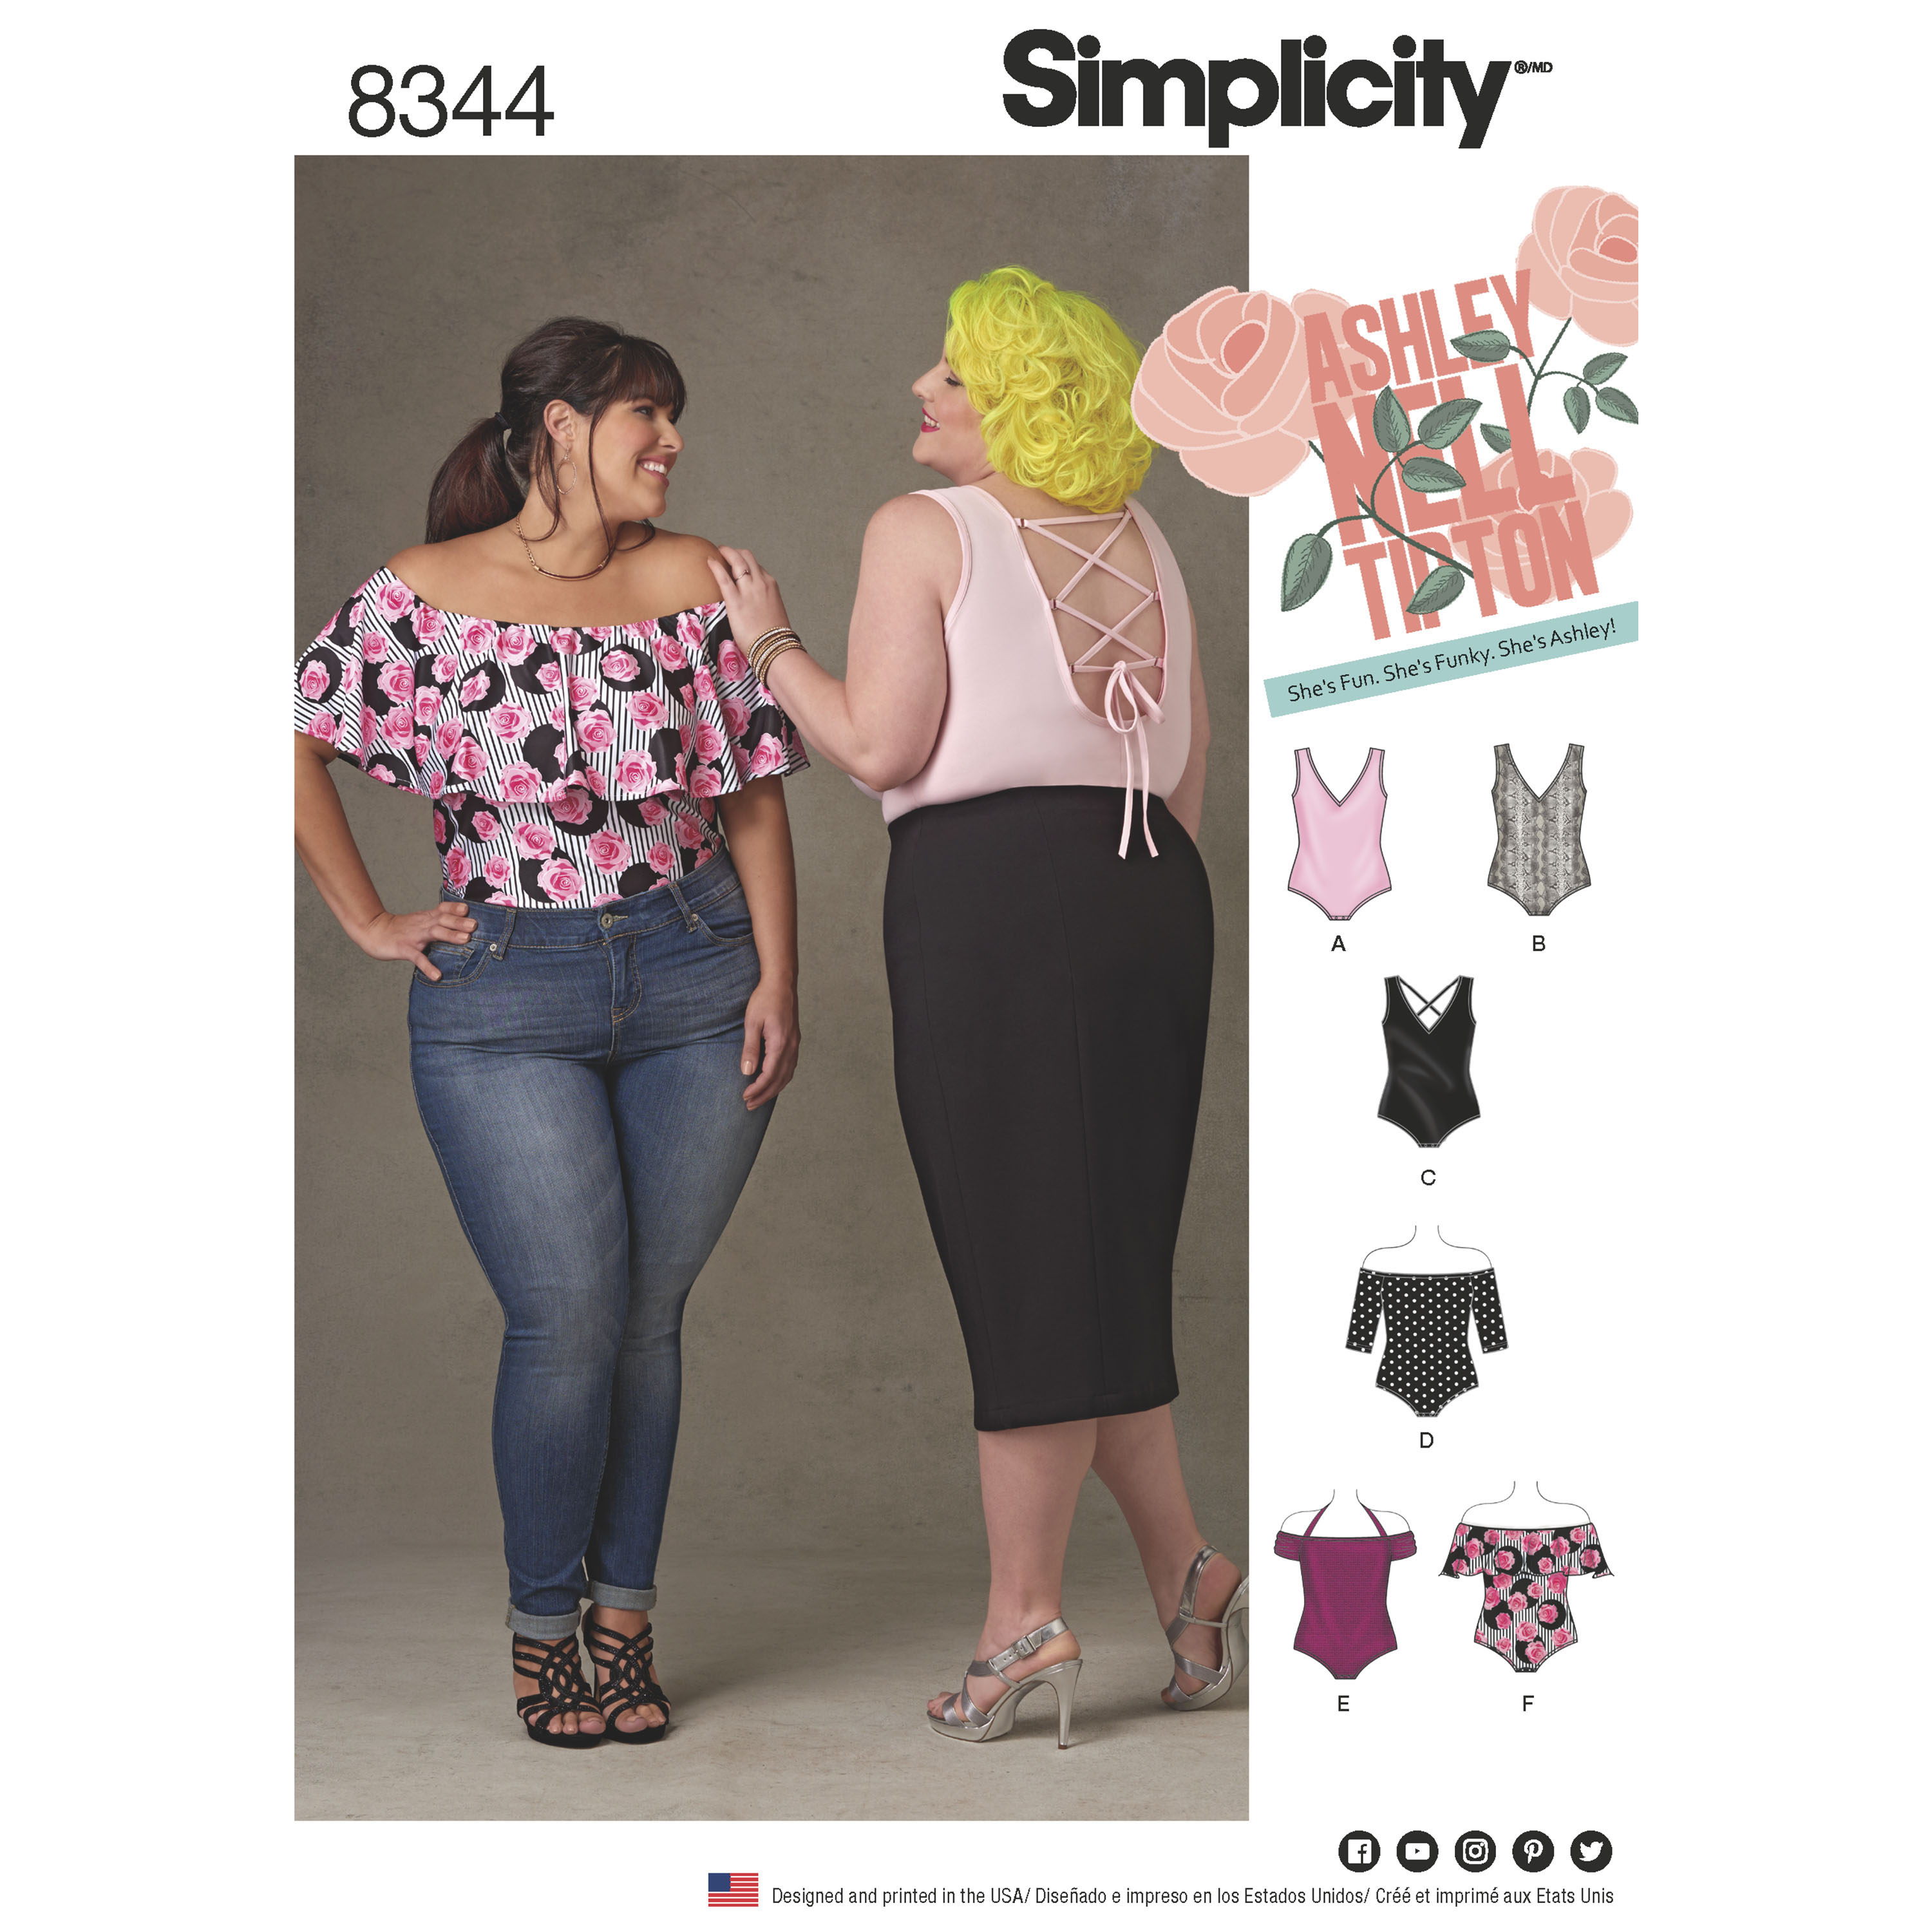 fced55be3f Simplicity 8344 Plus Size Knit Bodysuits by Ashley Nell Tipton